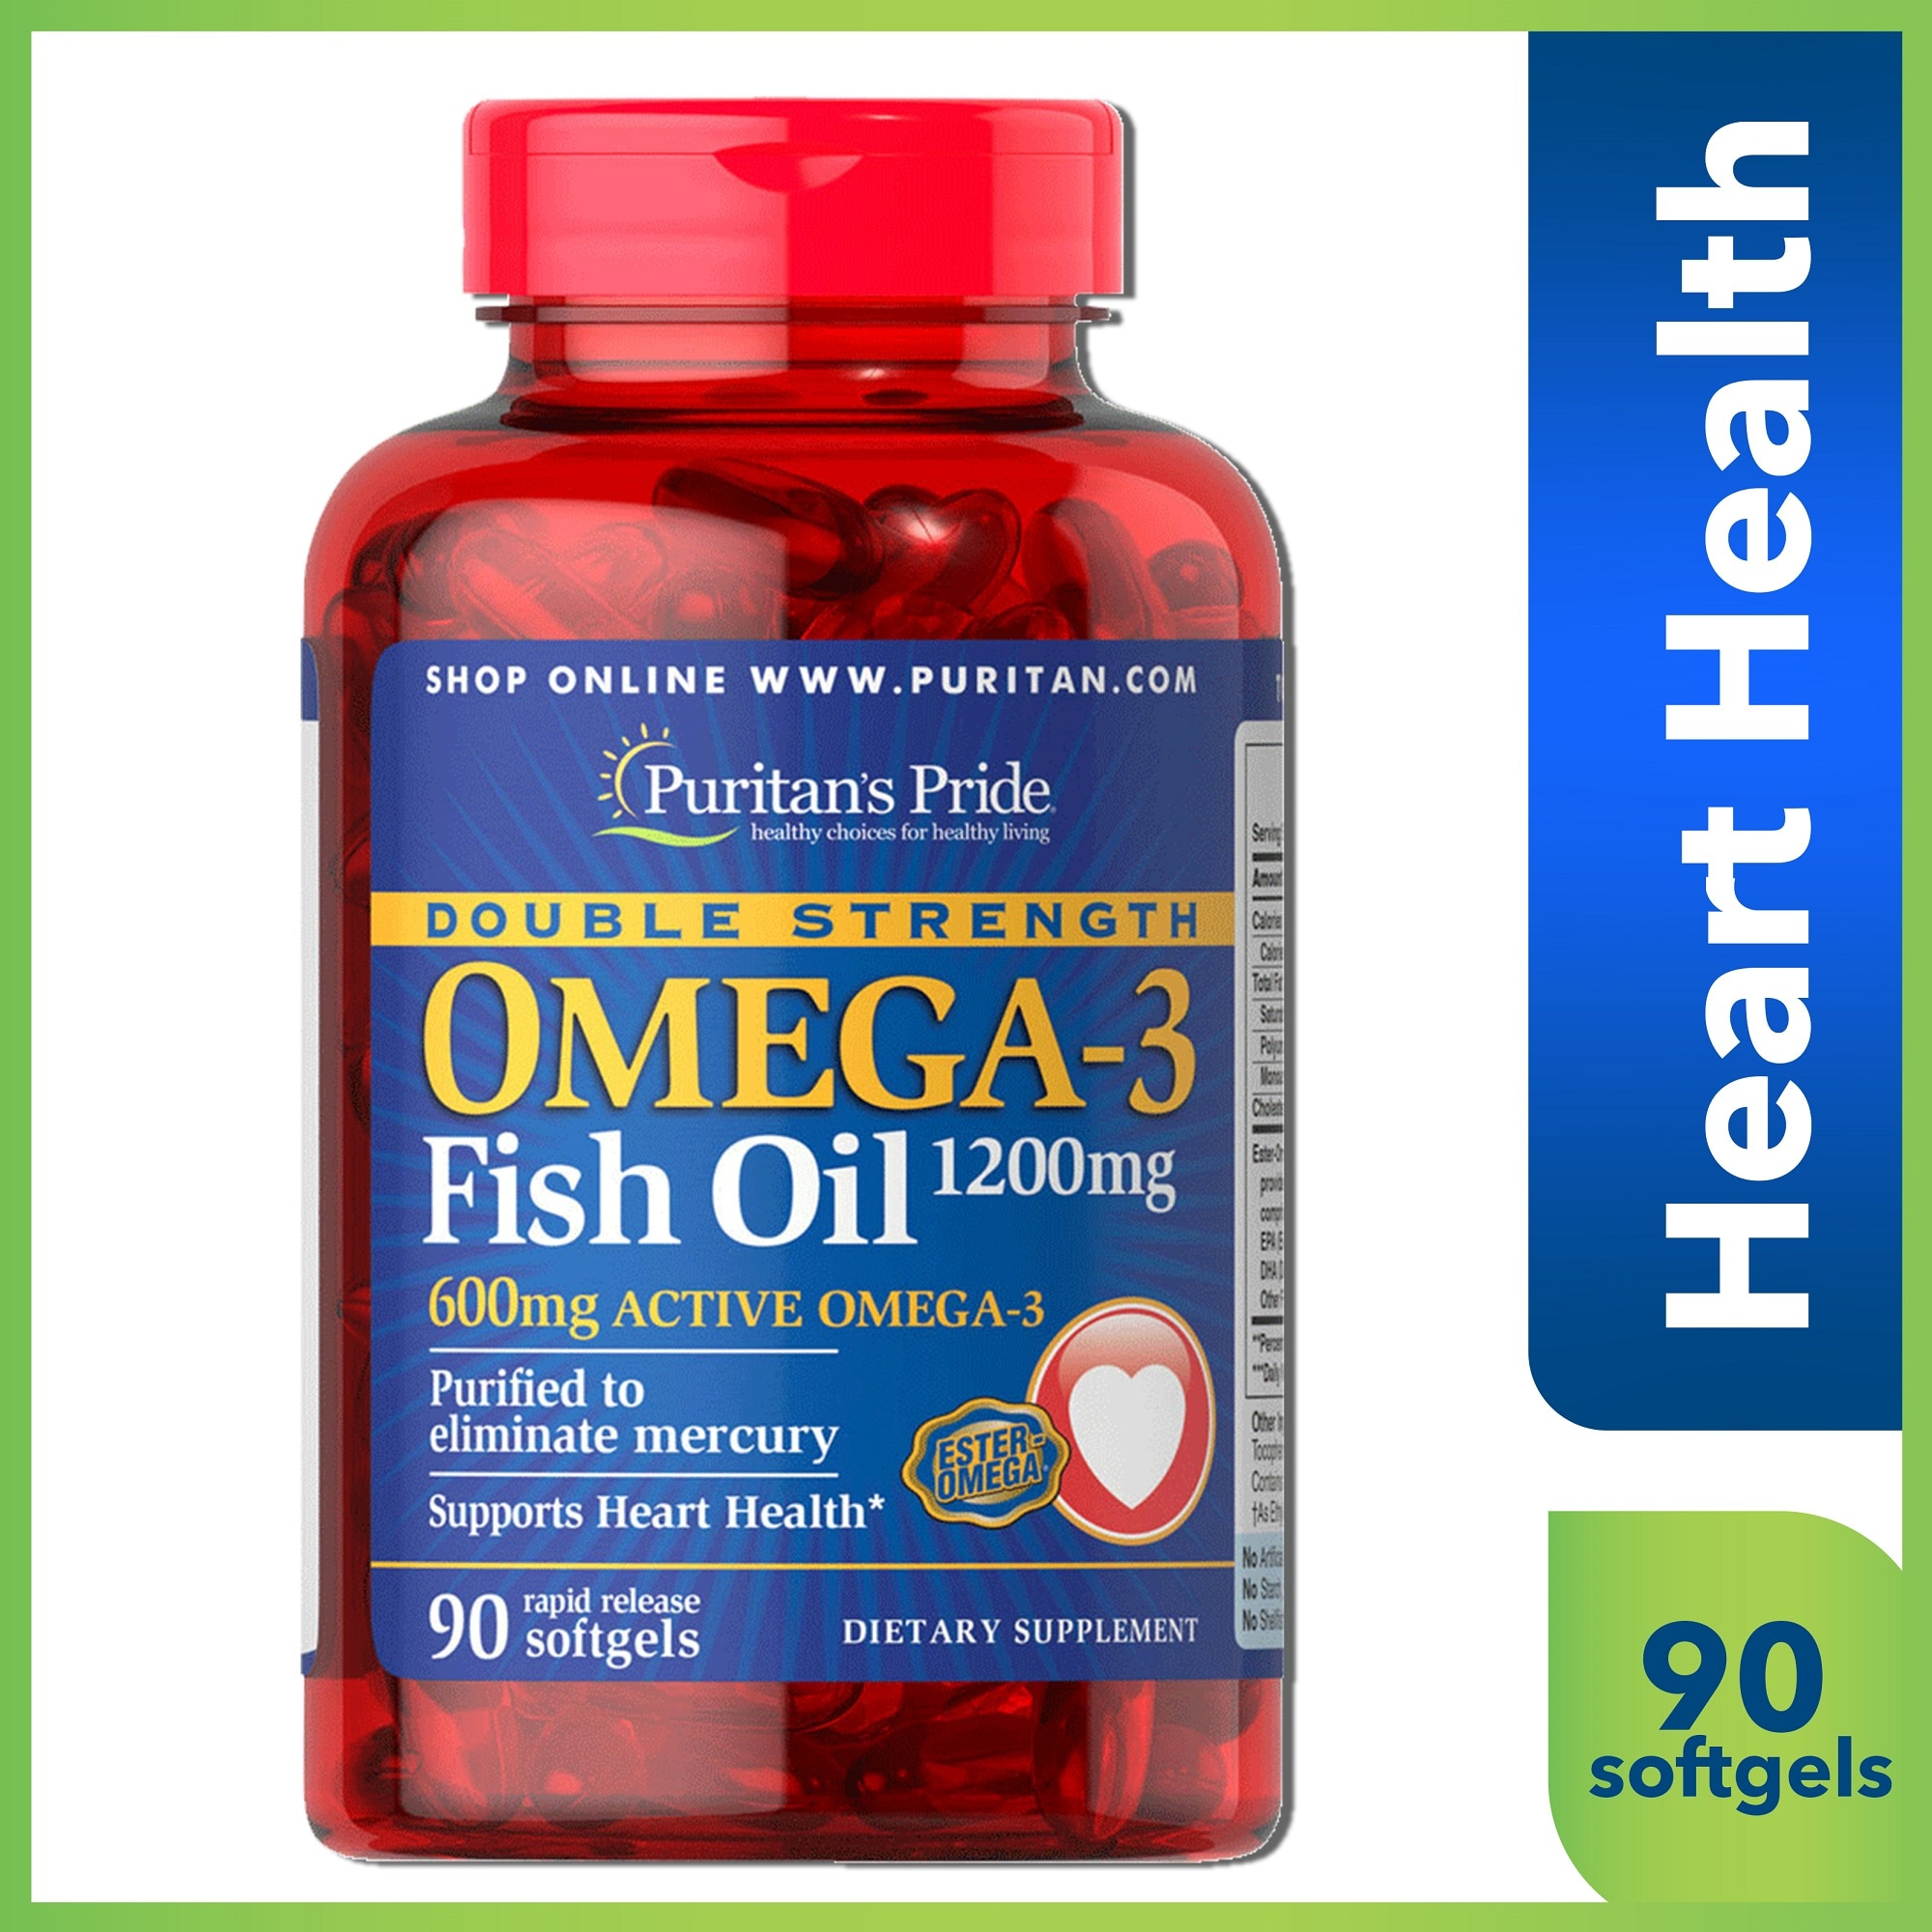 Fish Oil Omega 3 Double Strength 1200mg 90 Softgels